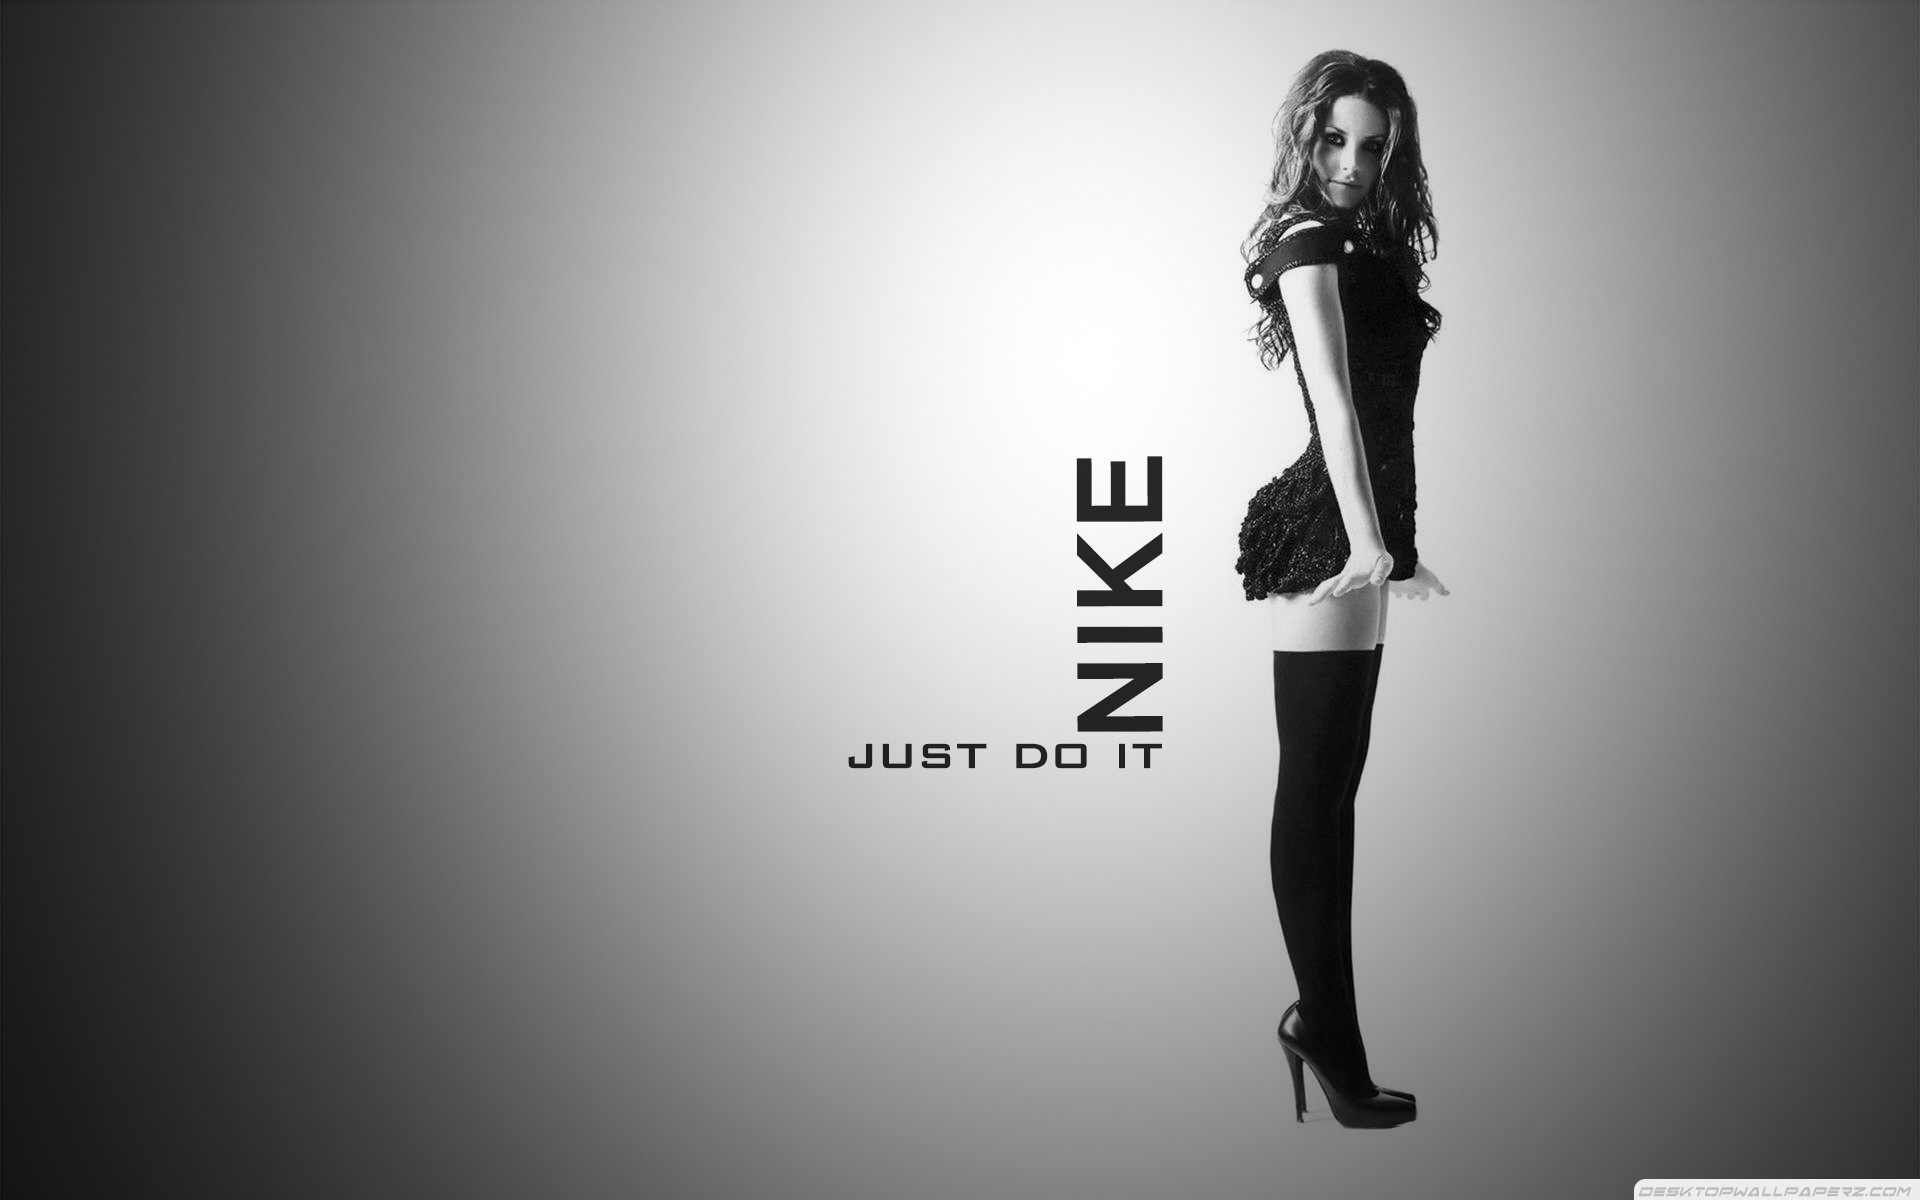 nike wallpaper just do it (61+ images)